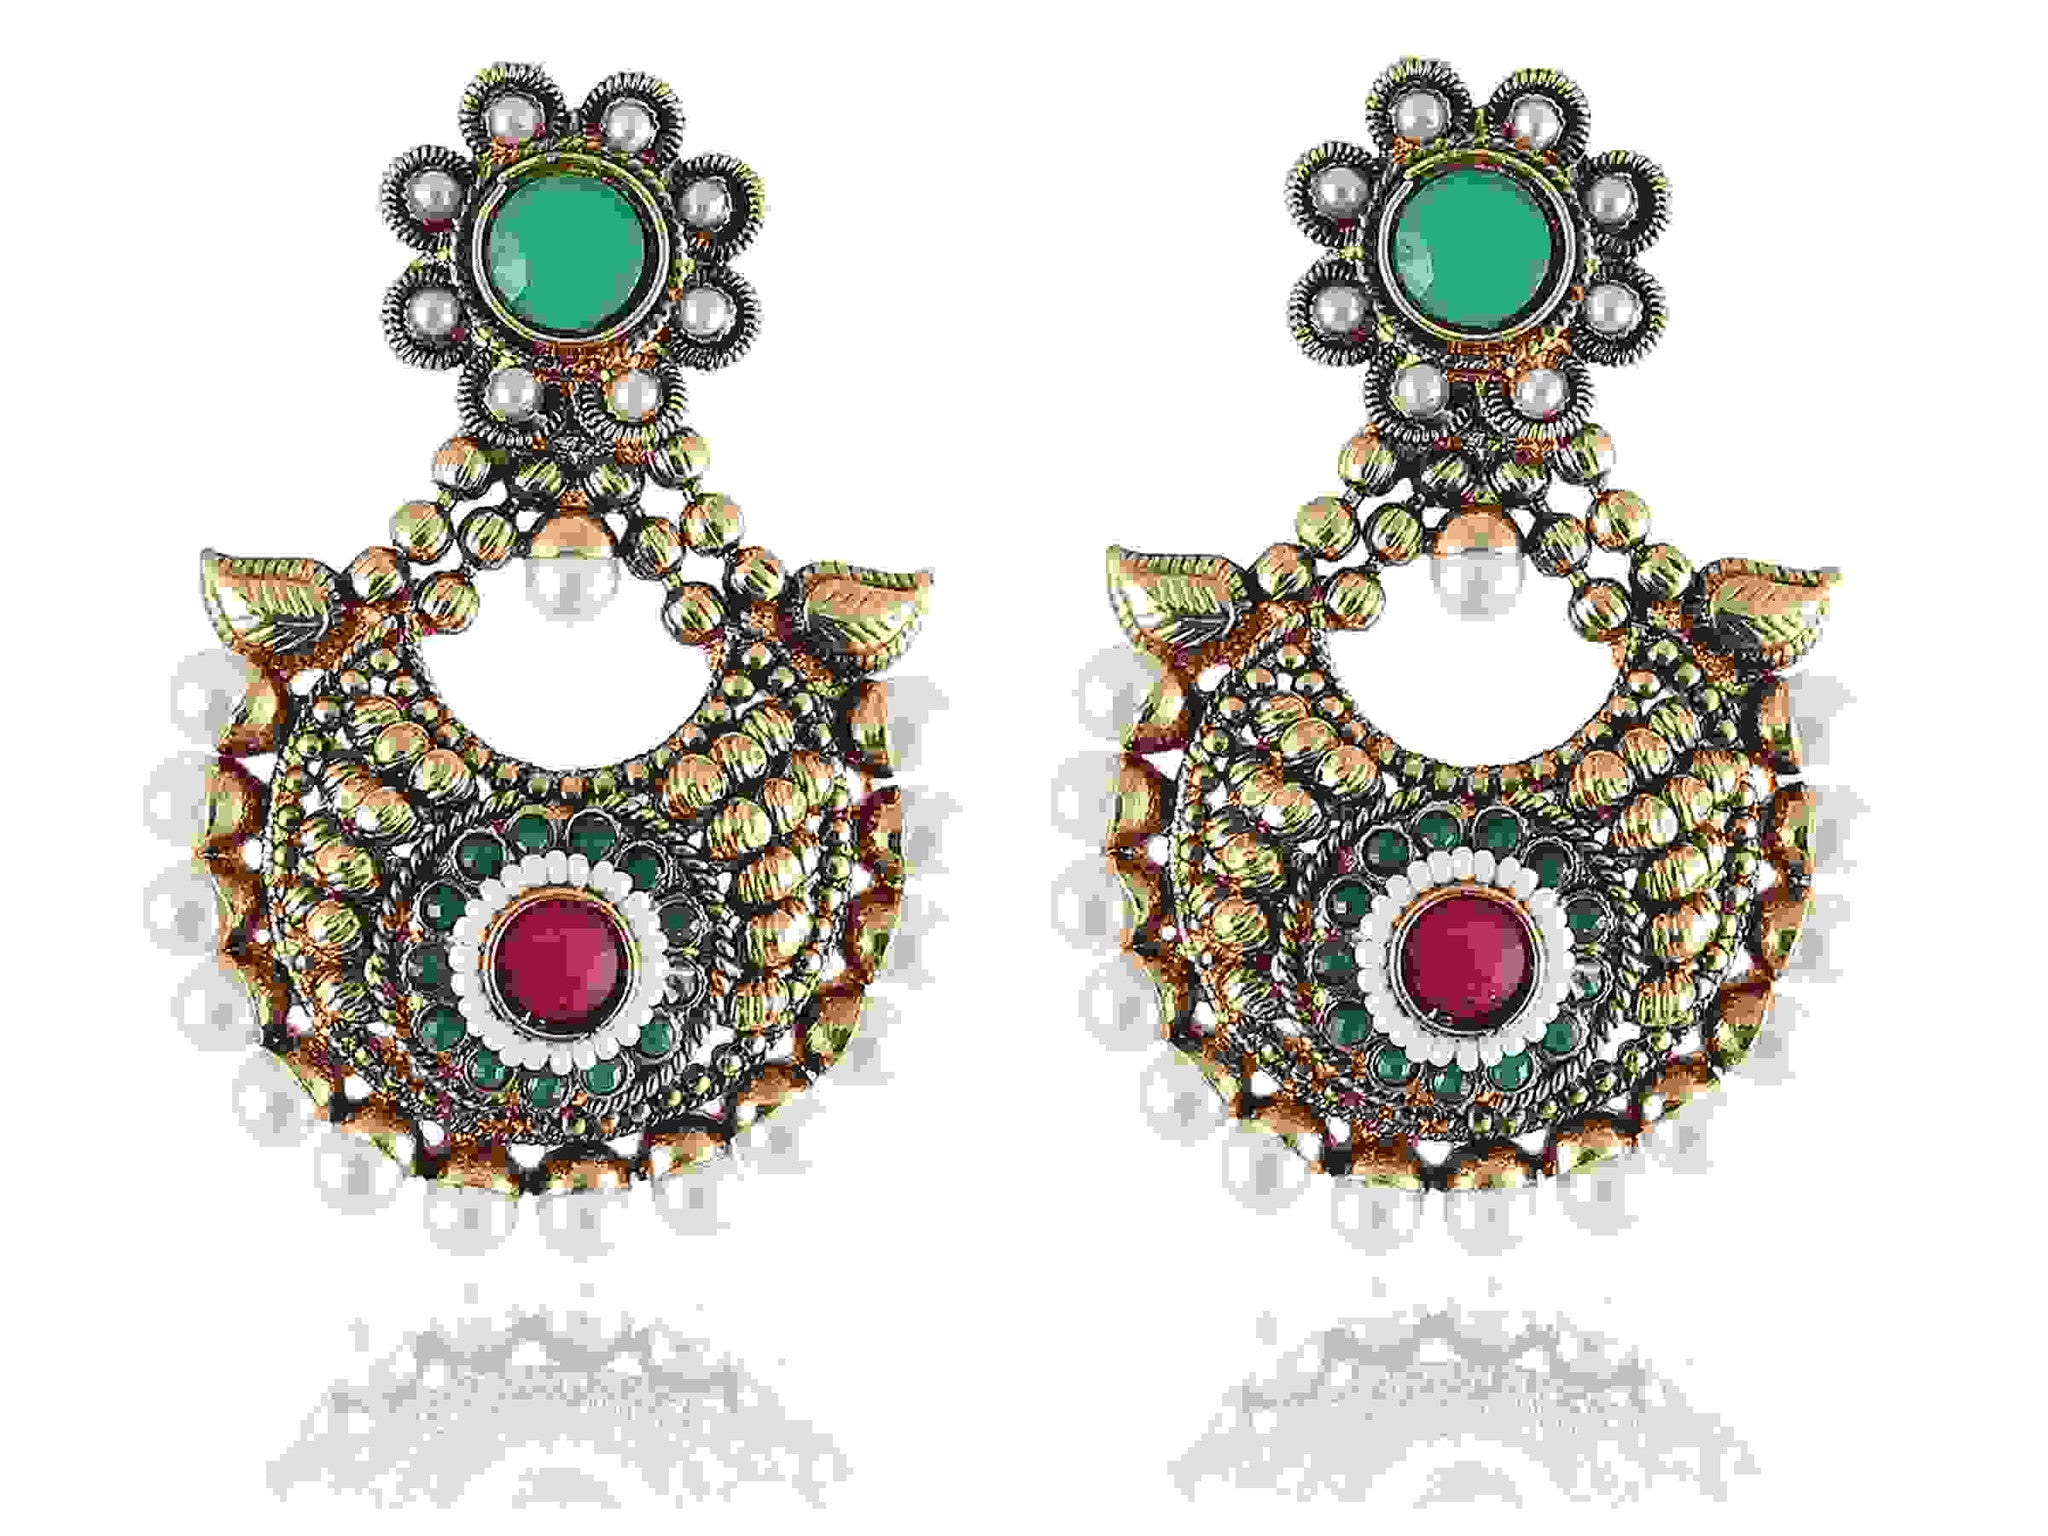 Bejeweled Polki Earrings in Red, Green and White Colour - PO757